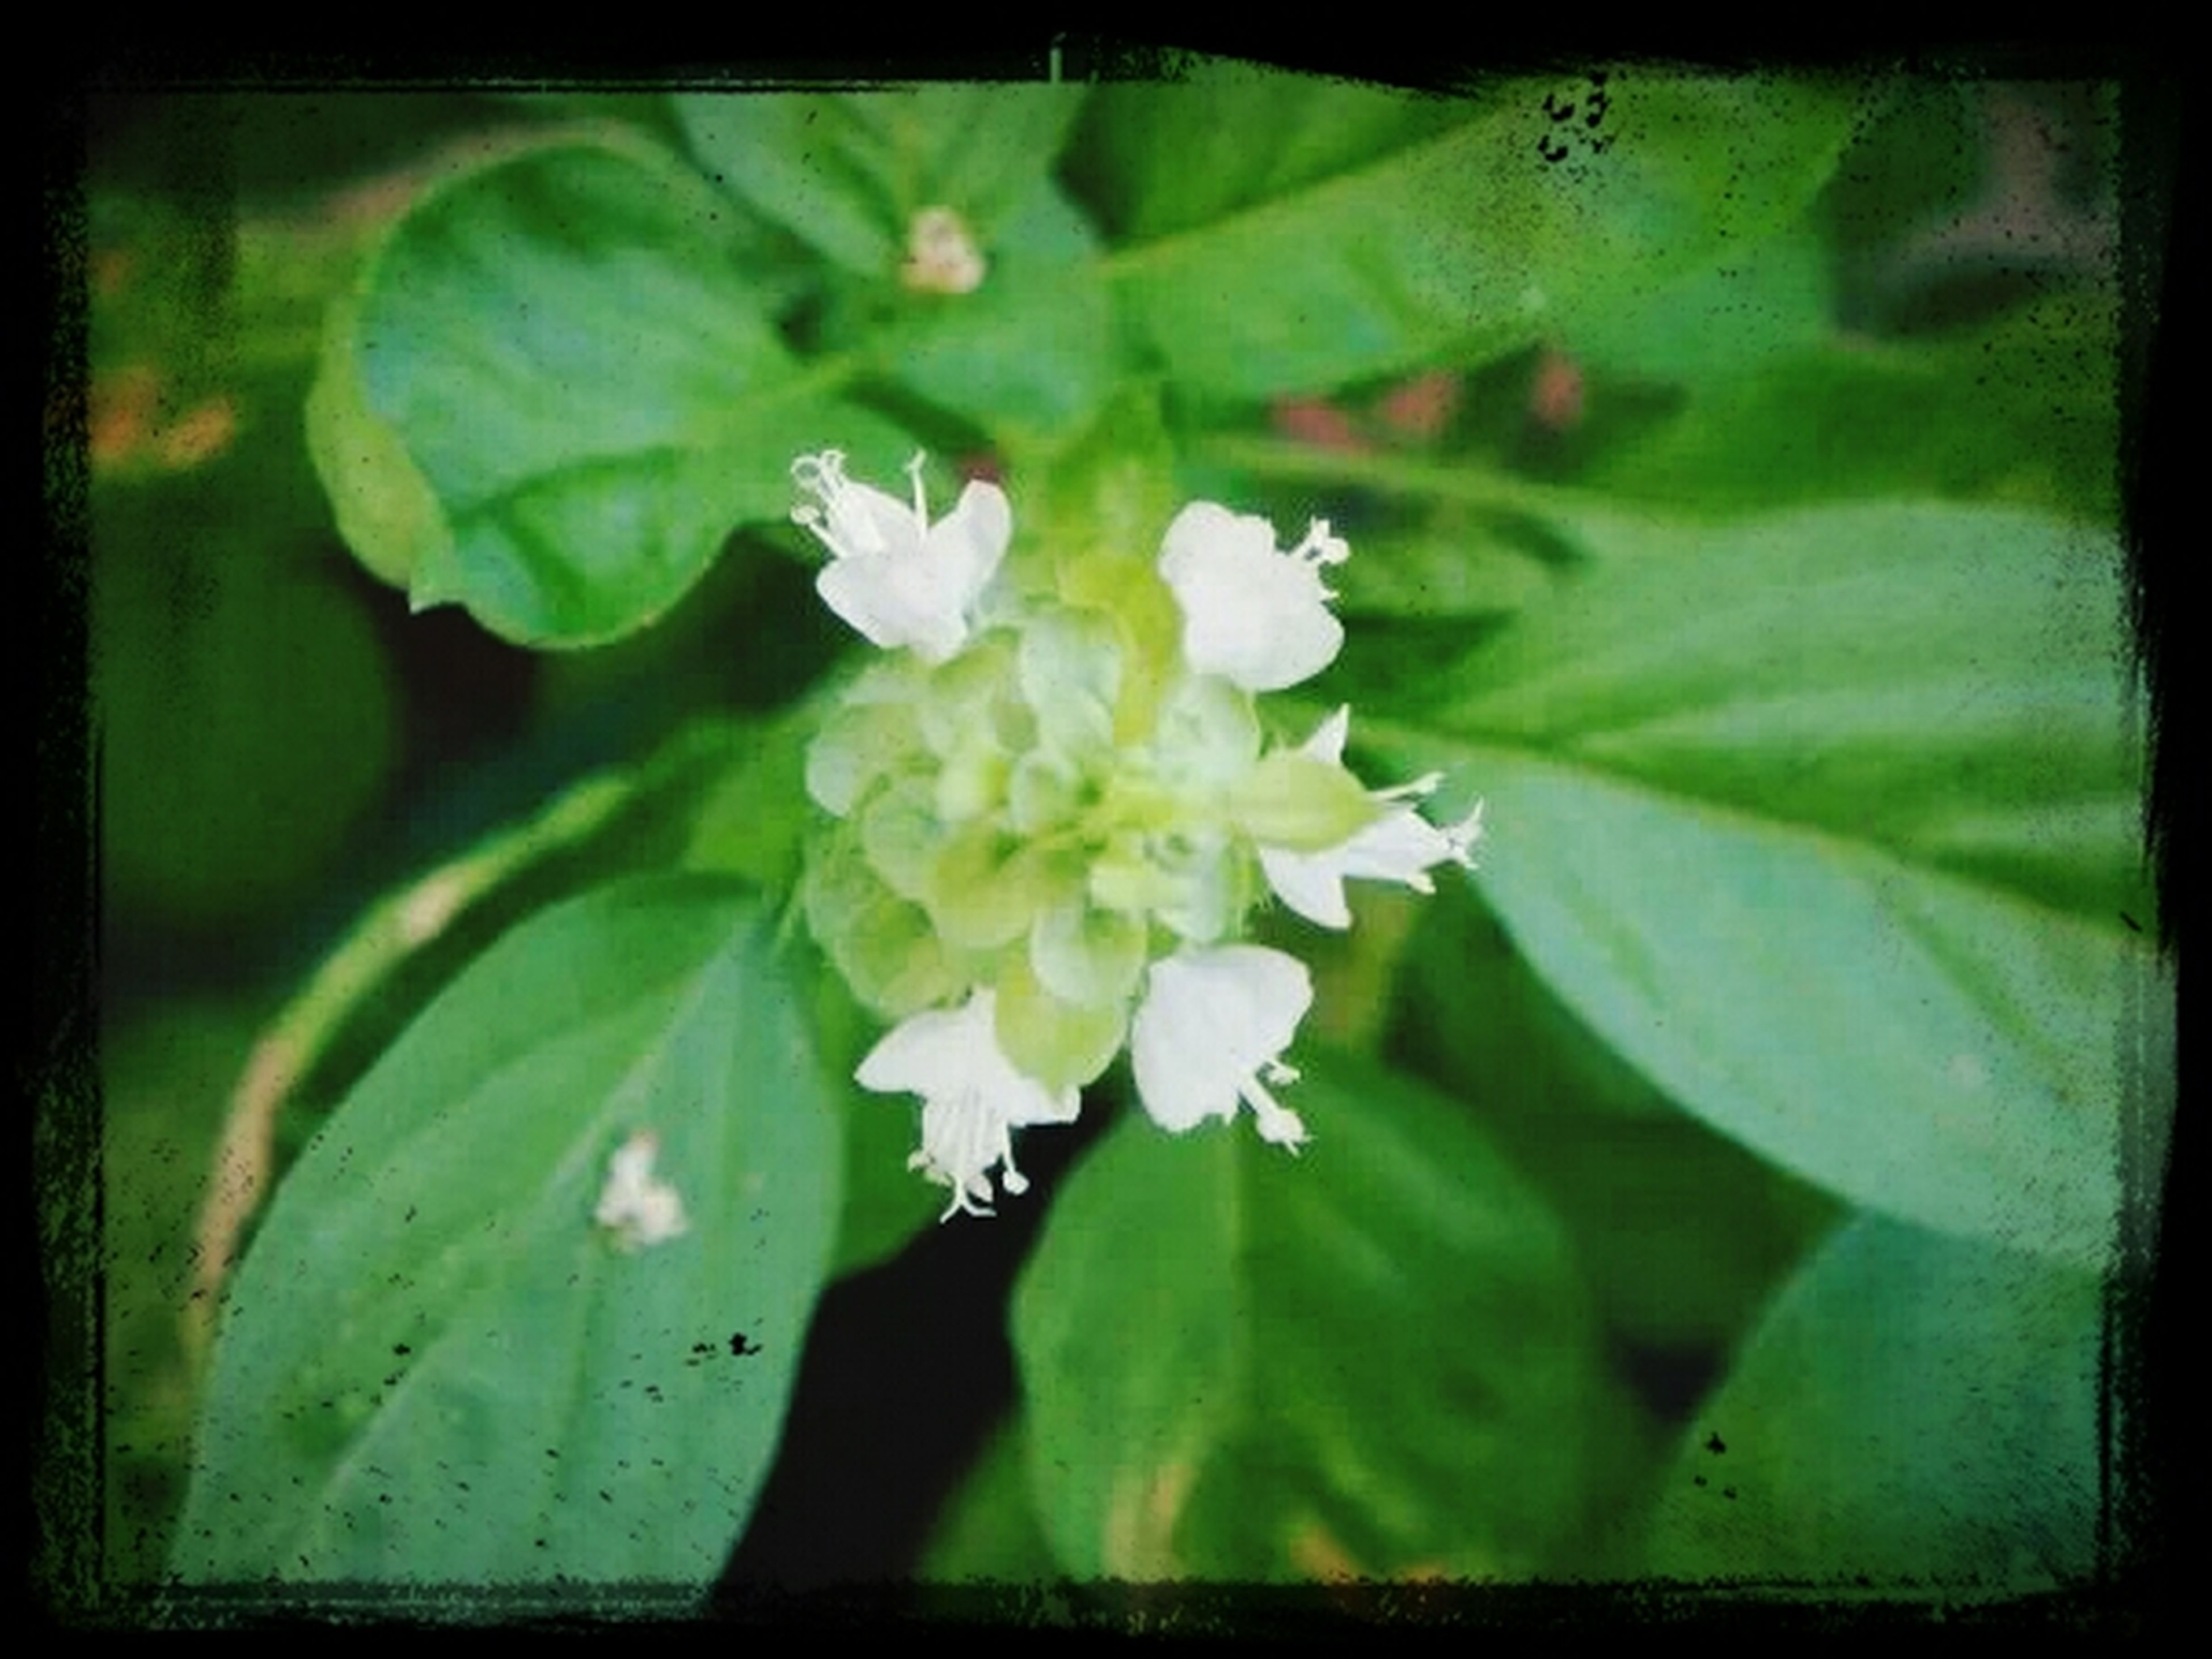 flower, freshness, transfer print, growth, petal, fragility, leaf, flower head, beauty in nature, auto post production filter, white color, blooming, green color, nature, plant, close-up, focus on foreground, in bloom, blossom, outdoors